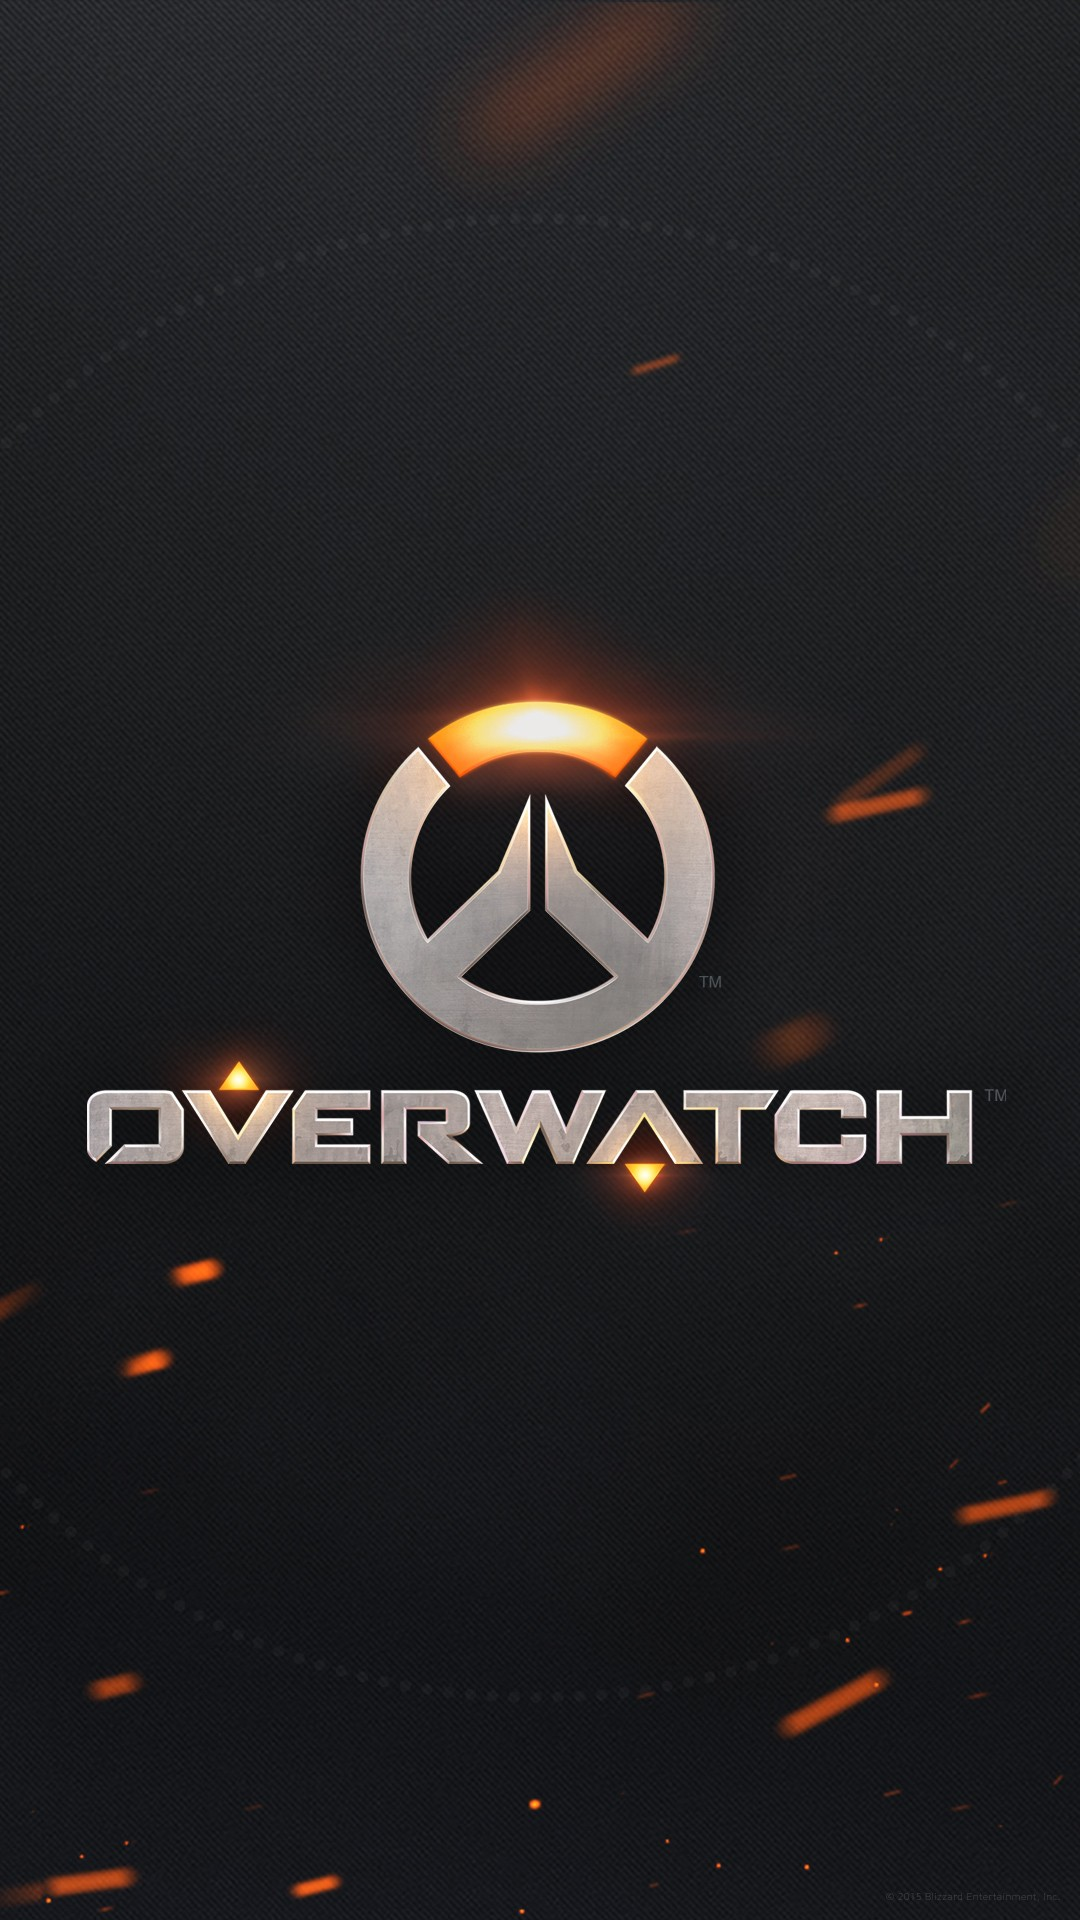 Overwatch Mobile Wallpaper ① Download Free Stunning Full Hd